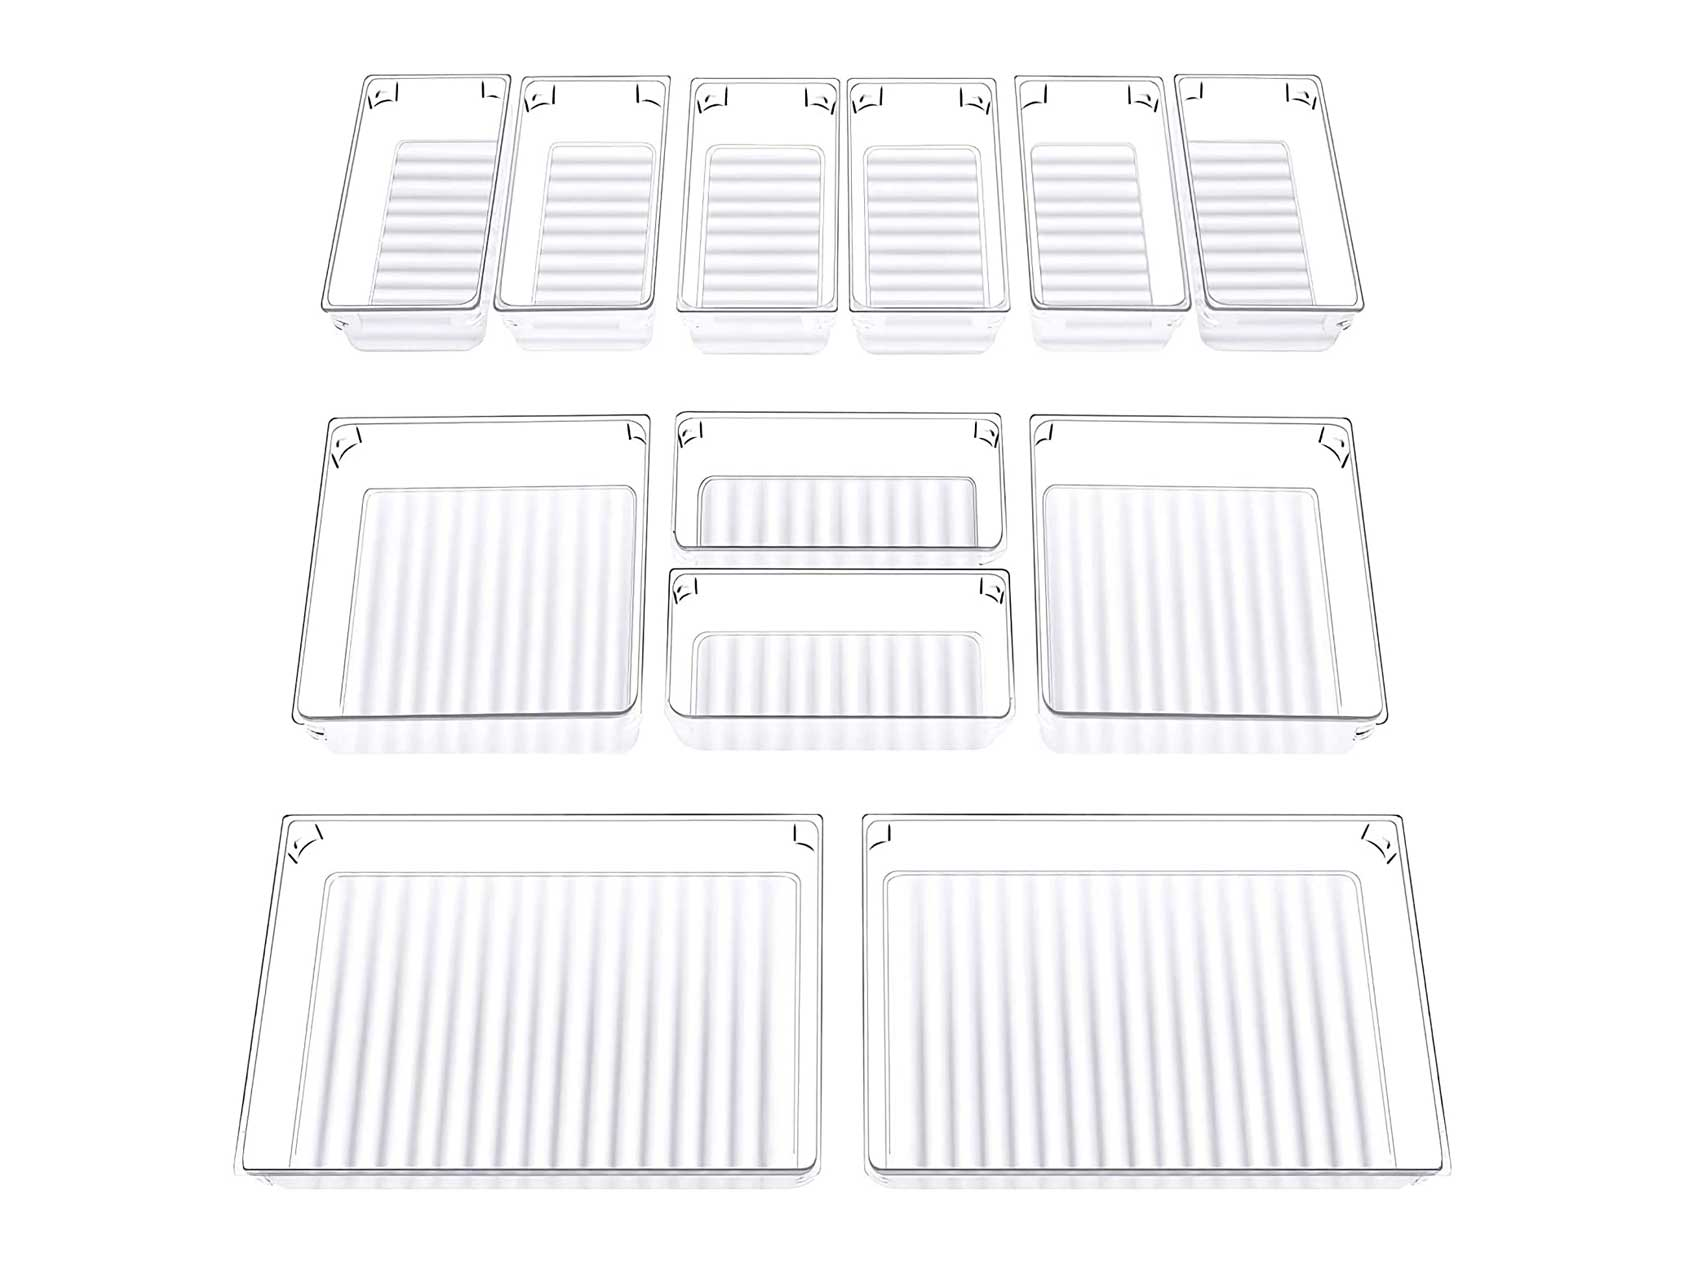 InnoGear Set of 12 Desk Drawer Organiser Trays with 3-Size Clear Plastic Storage Boxes Divider Make-up Organiser for Kitchen Bedroom Office (Frosted Transparent)